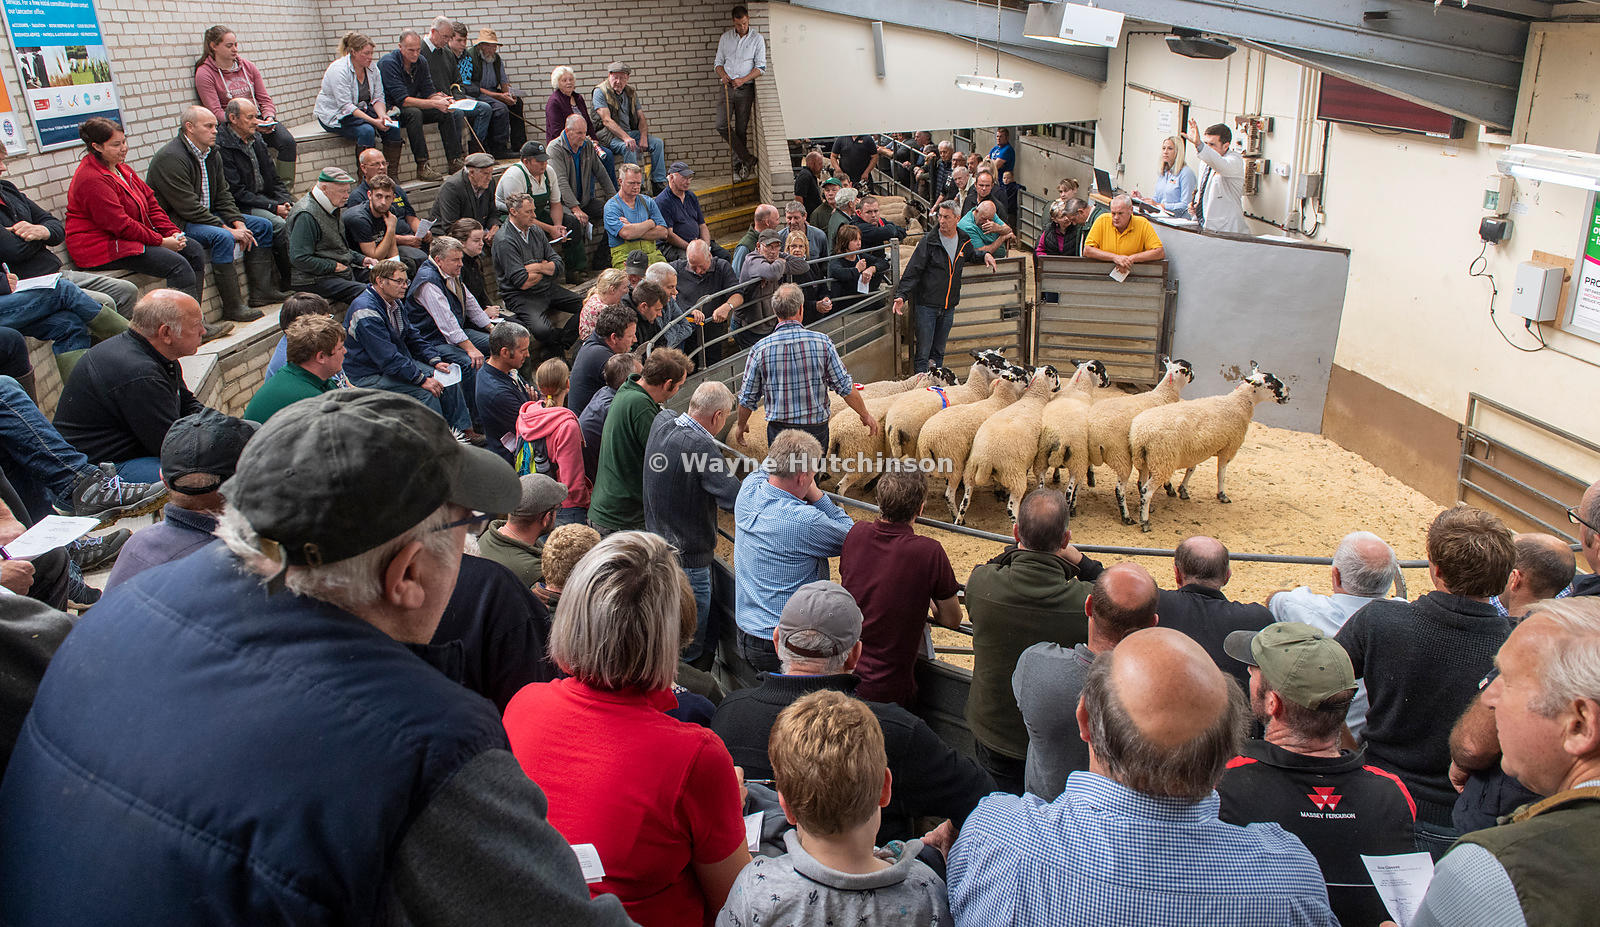 Mule shearlings being sold at Lancaster Auction mart at a breeding sale. Lancashire, UK